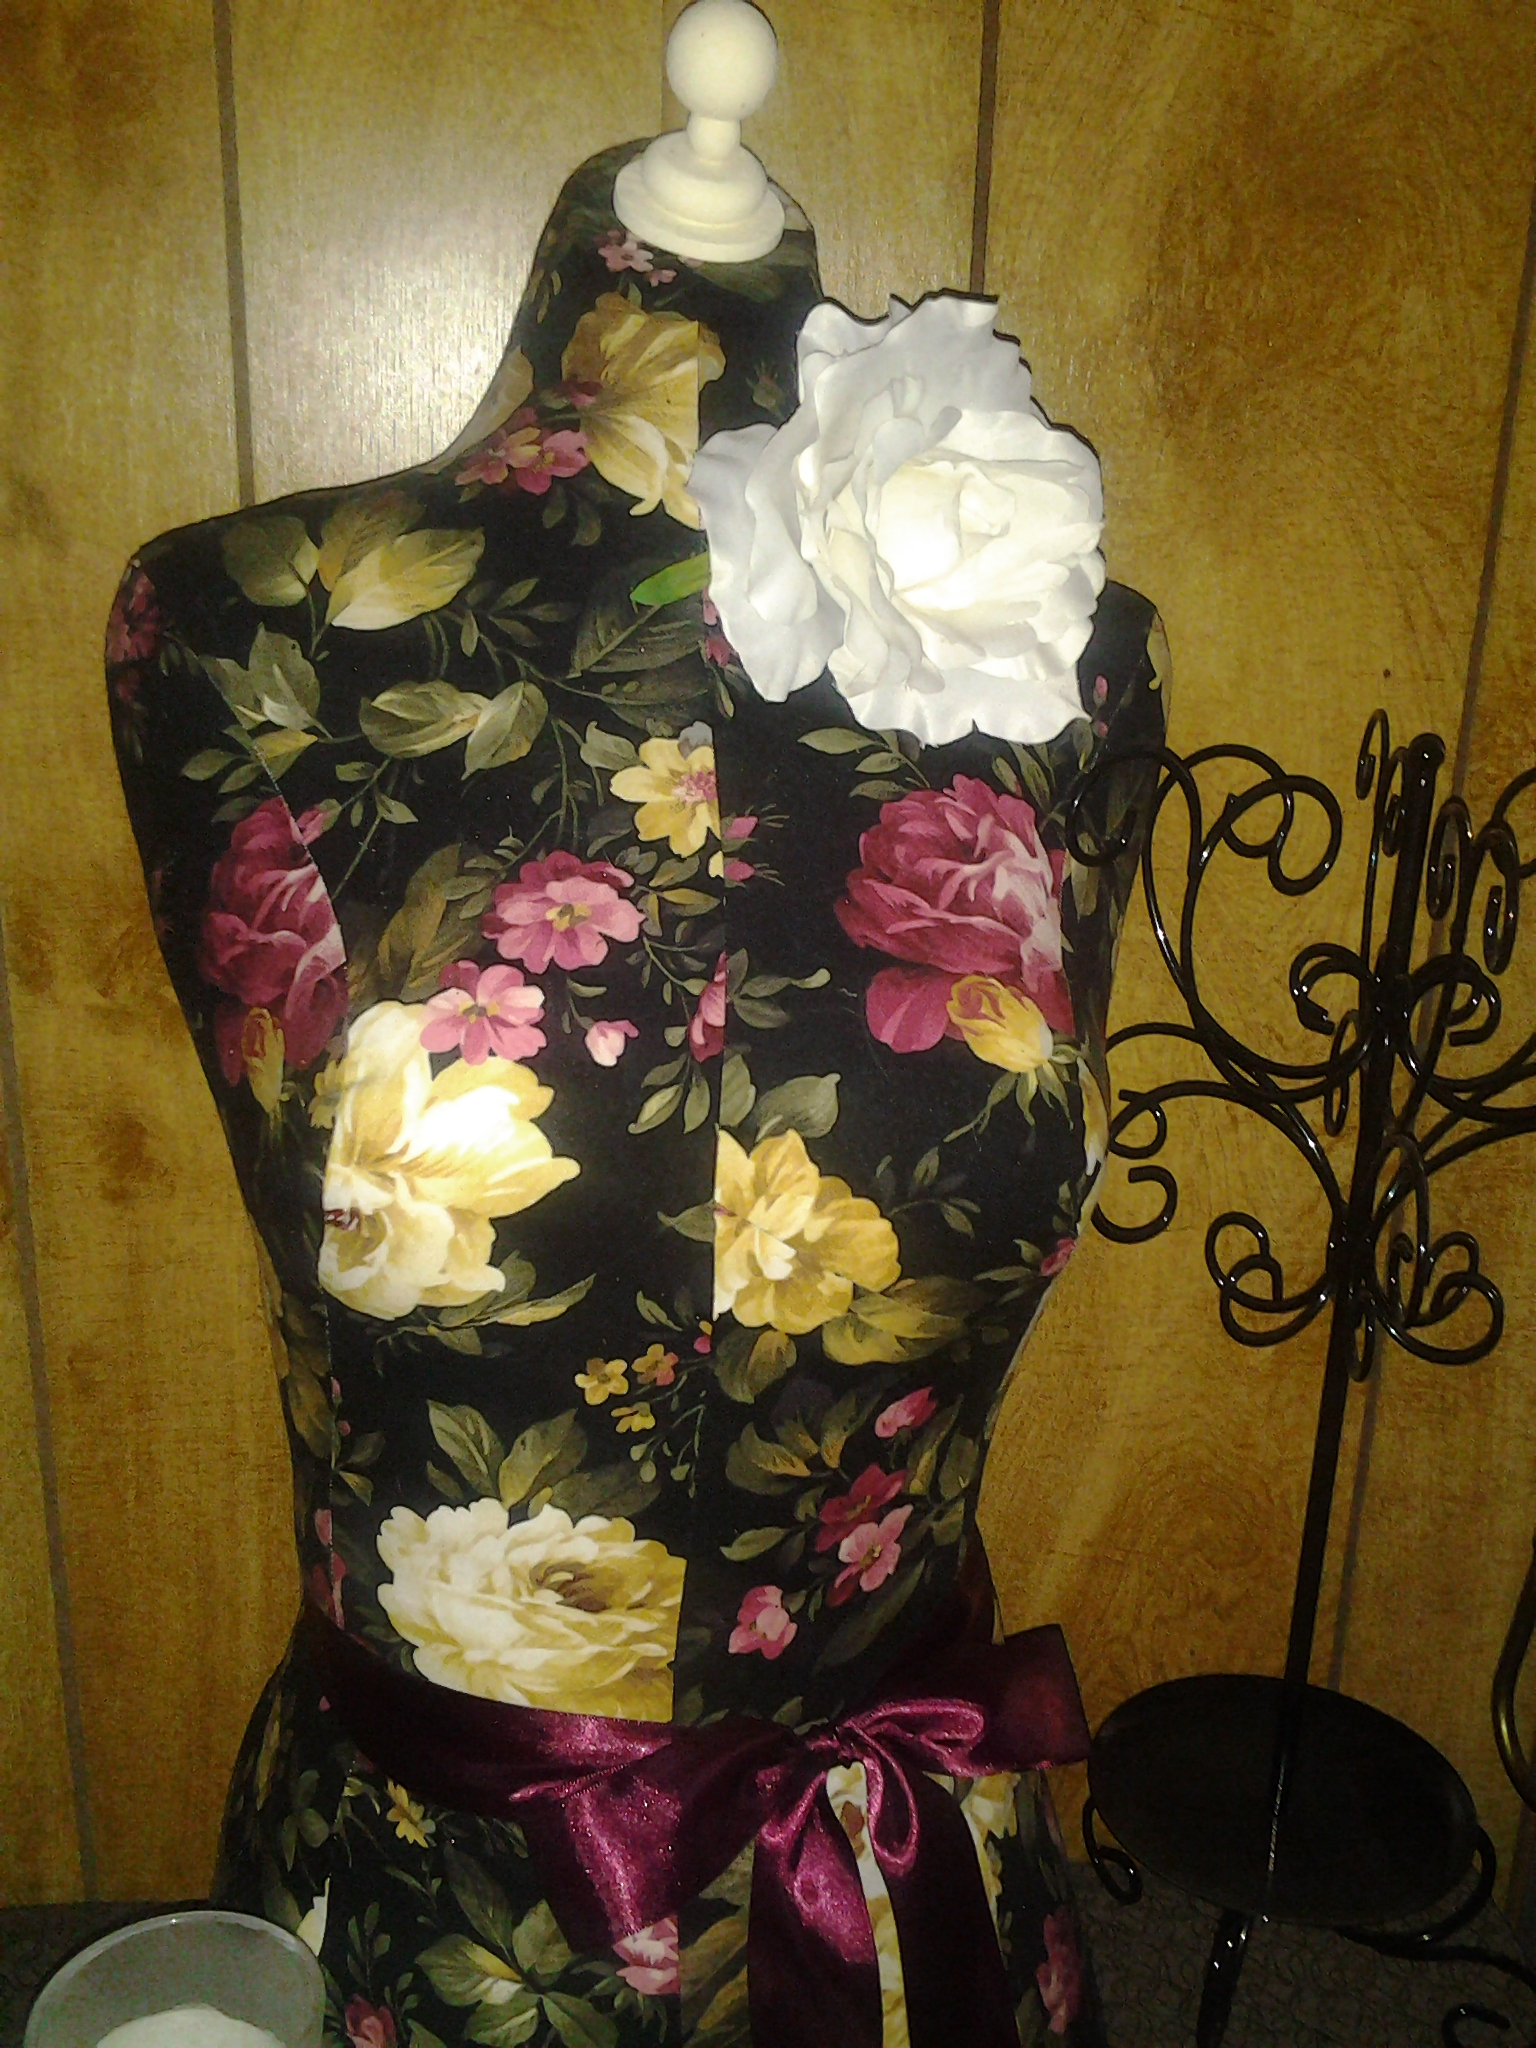 Boutique Dress Form Designs With Stand Life Size Torso Great For Store Front Display Or Home Decor Decorative Floral Inspired By Pottery Barn